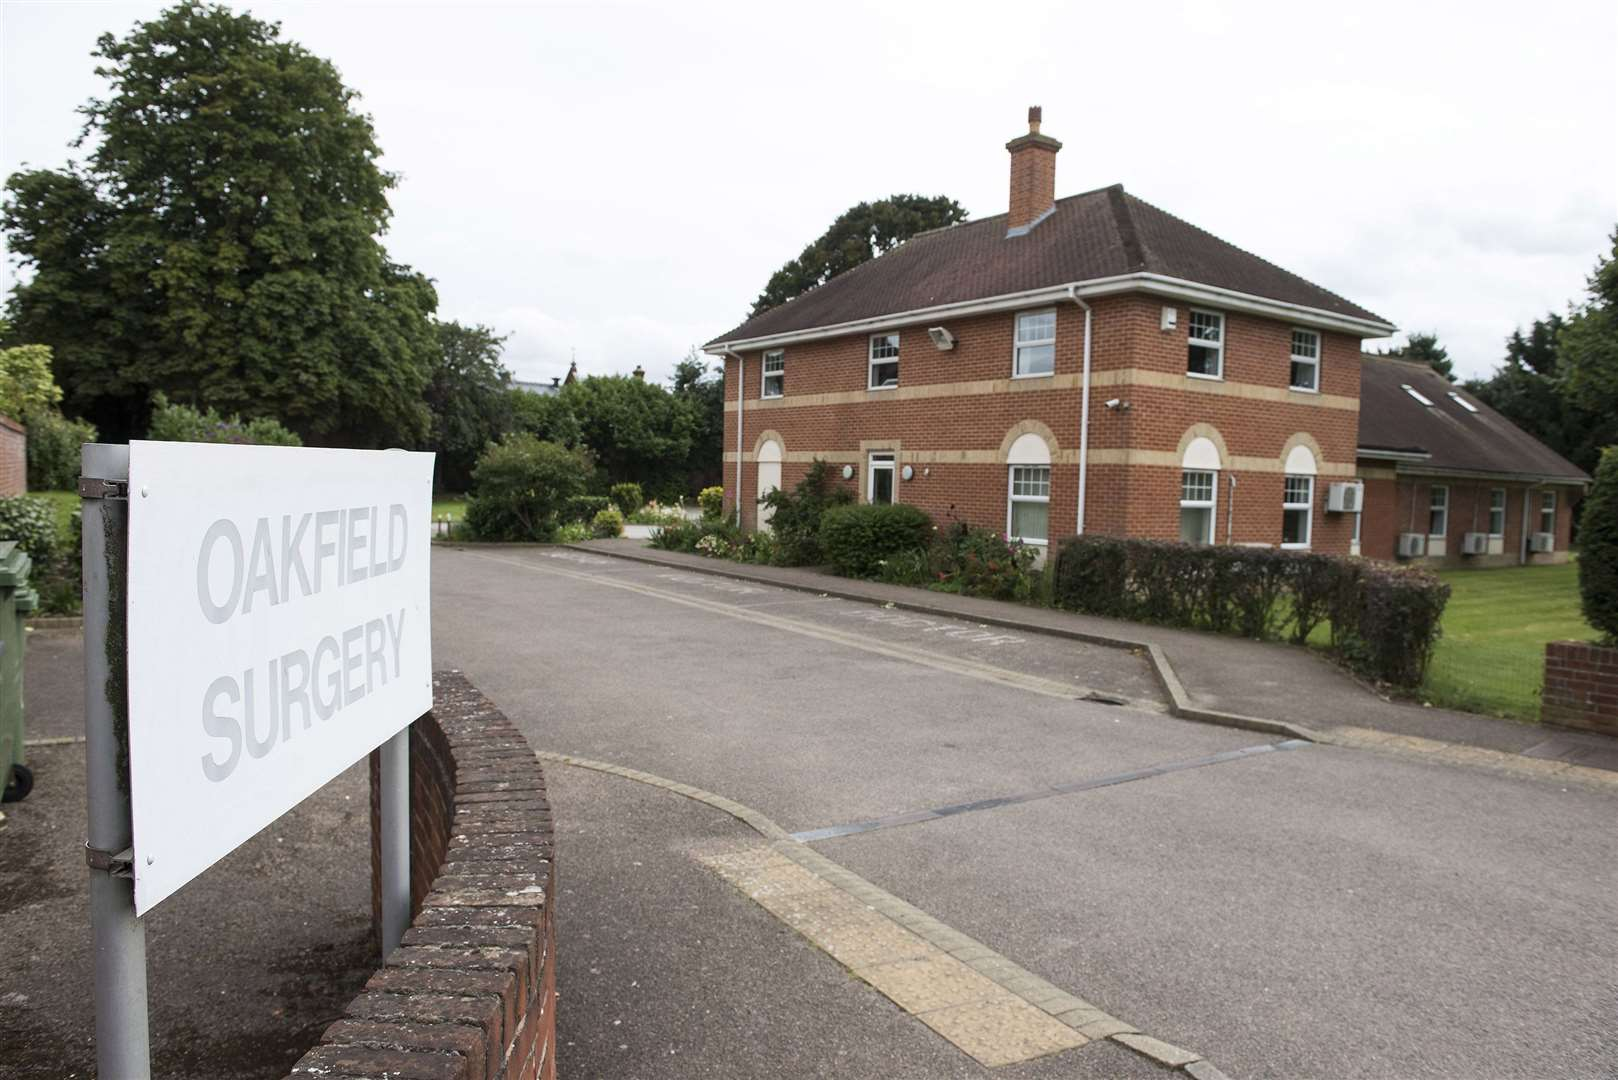 Oakfield Surgery moved out of its Vicarage Road location, pictured above, earlier this year. Picture: Mark Westley